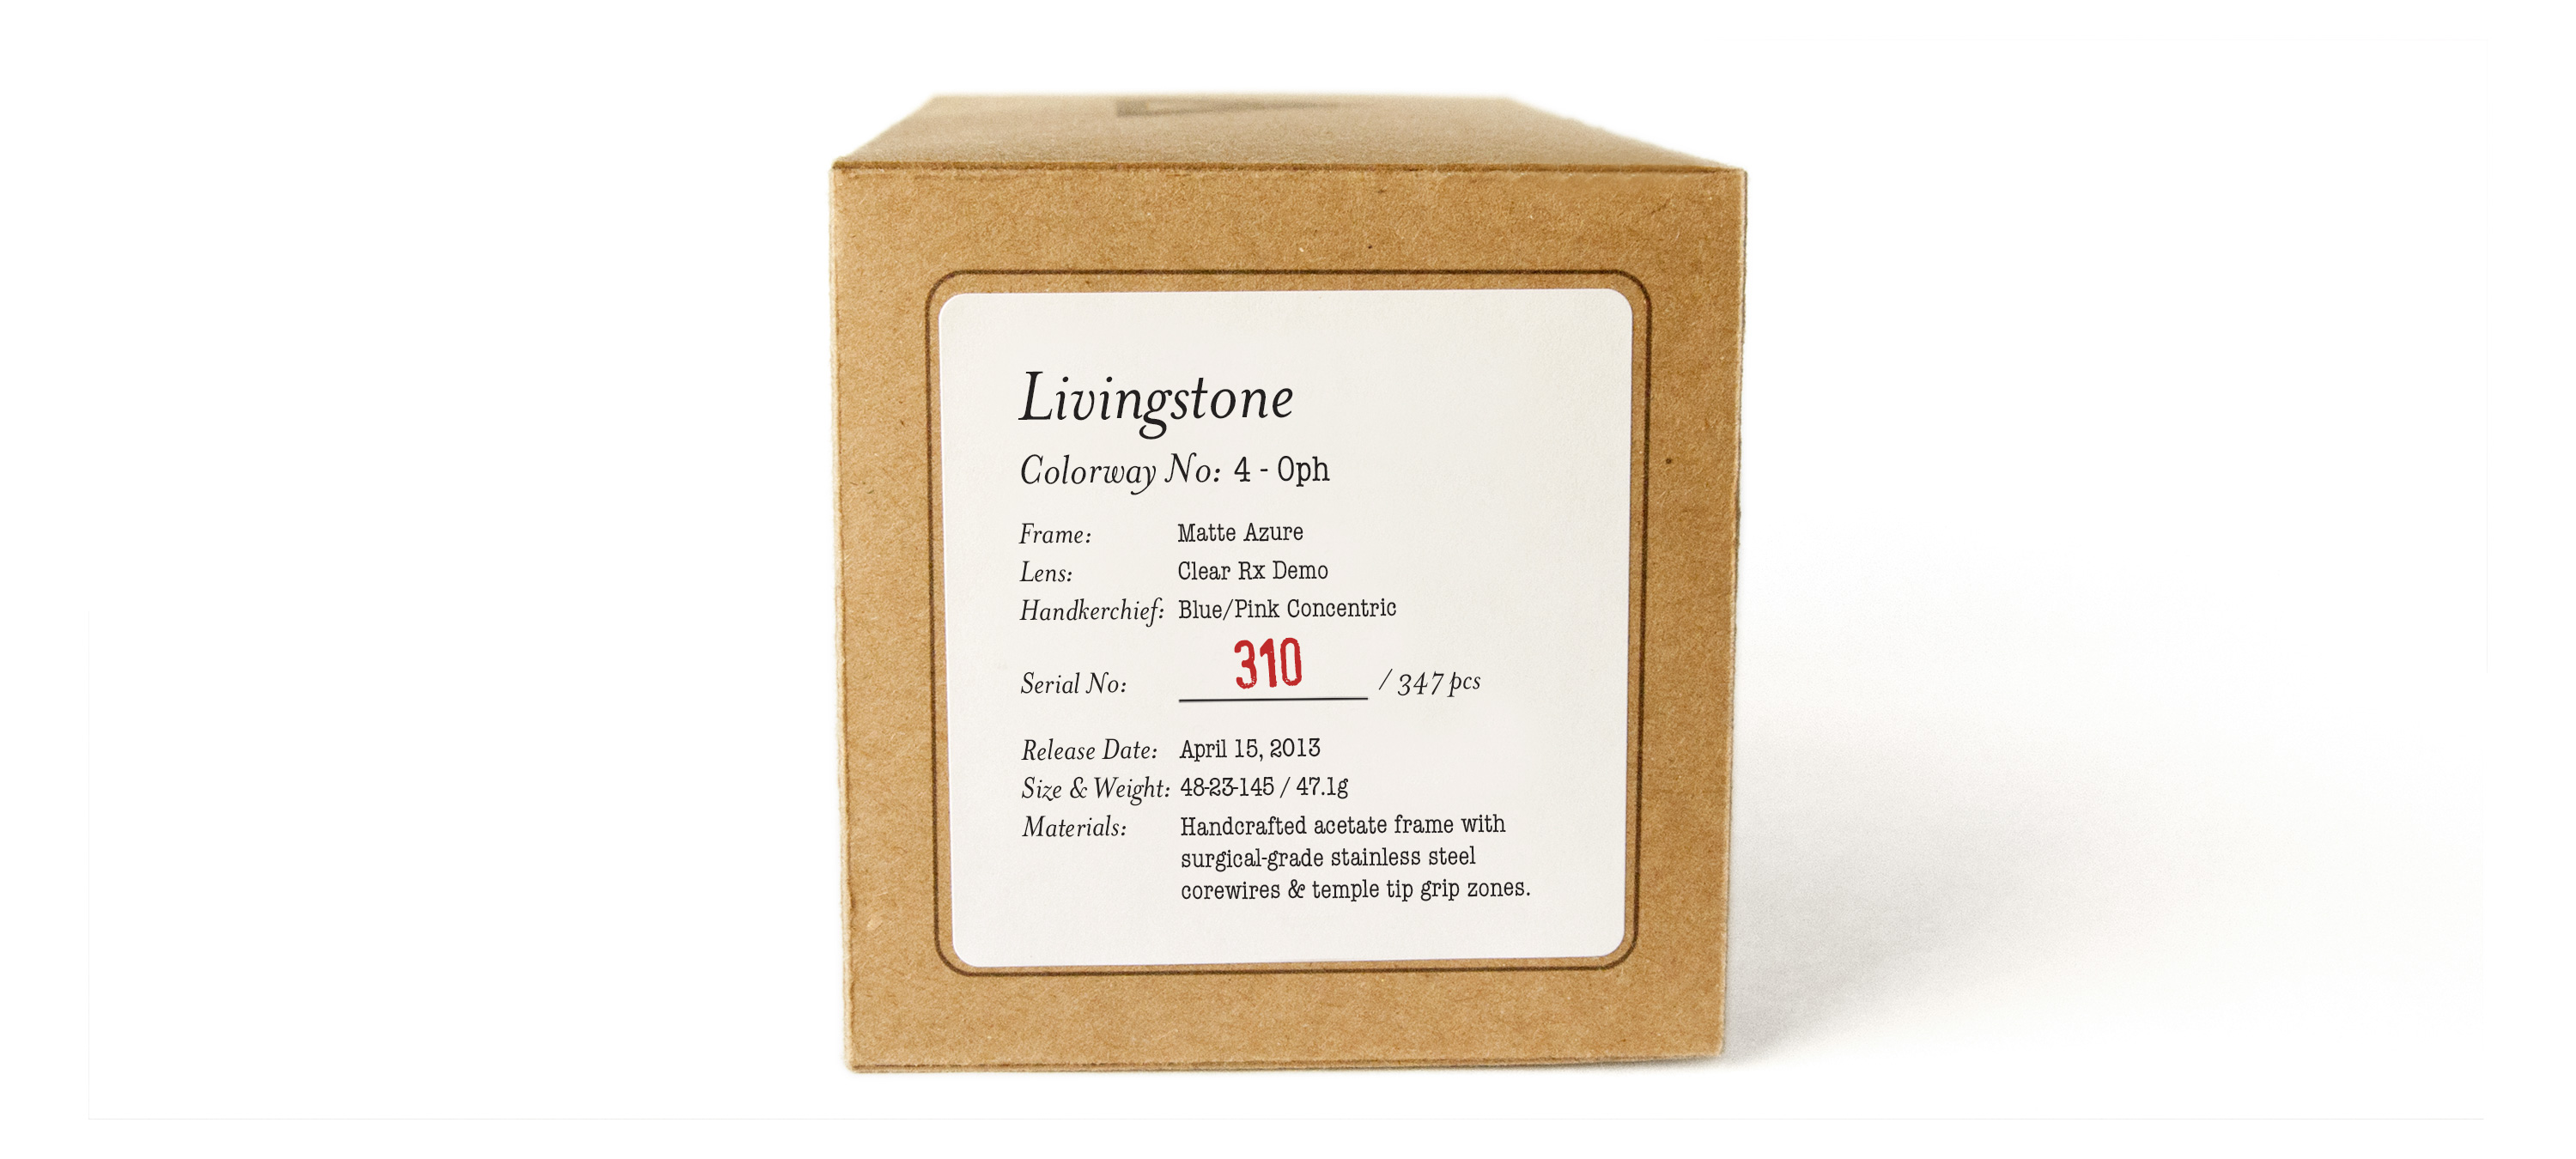 outer_pkg_label_livingstone_oph_04